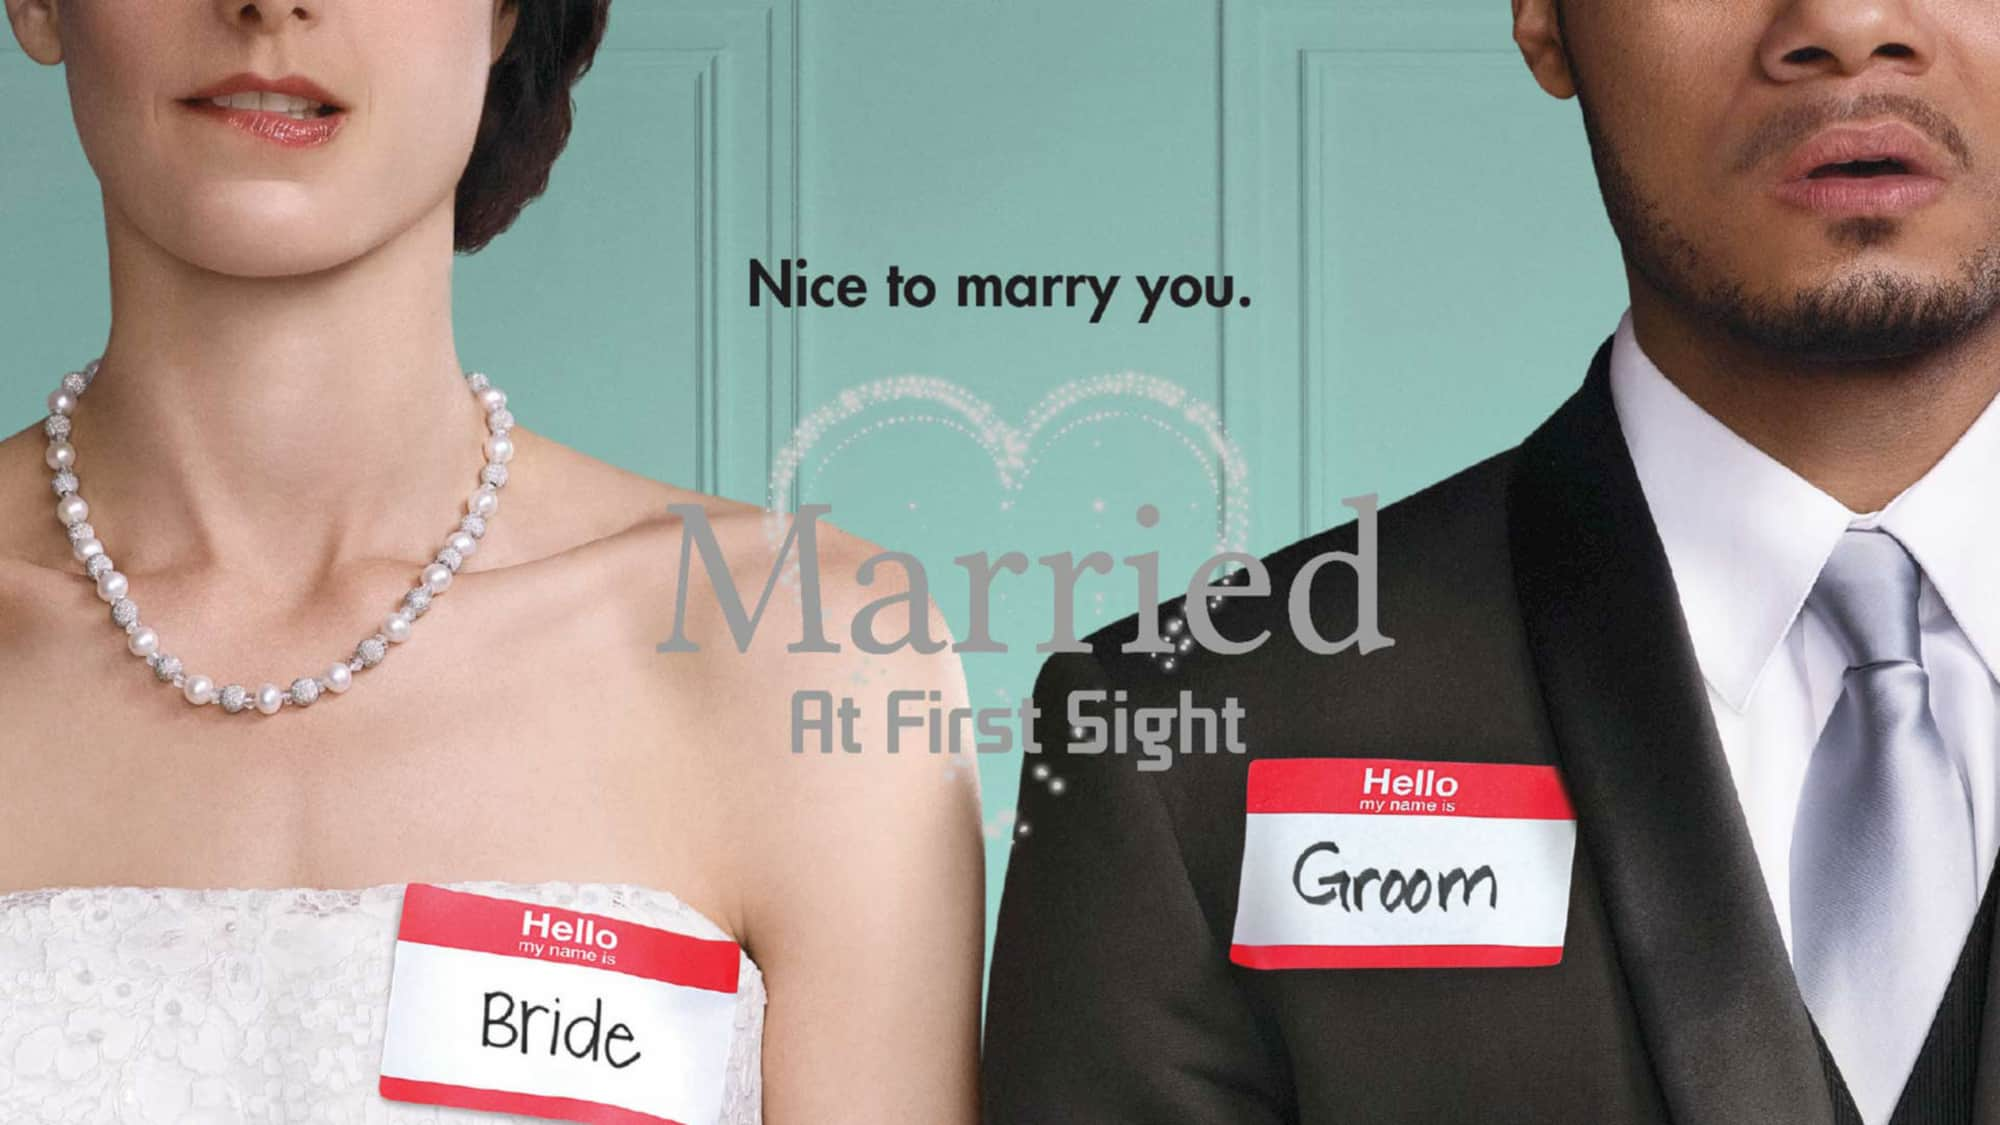 image from Married at First Sight